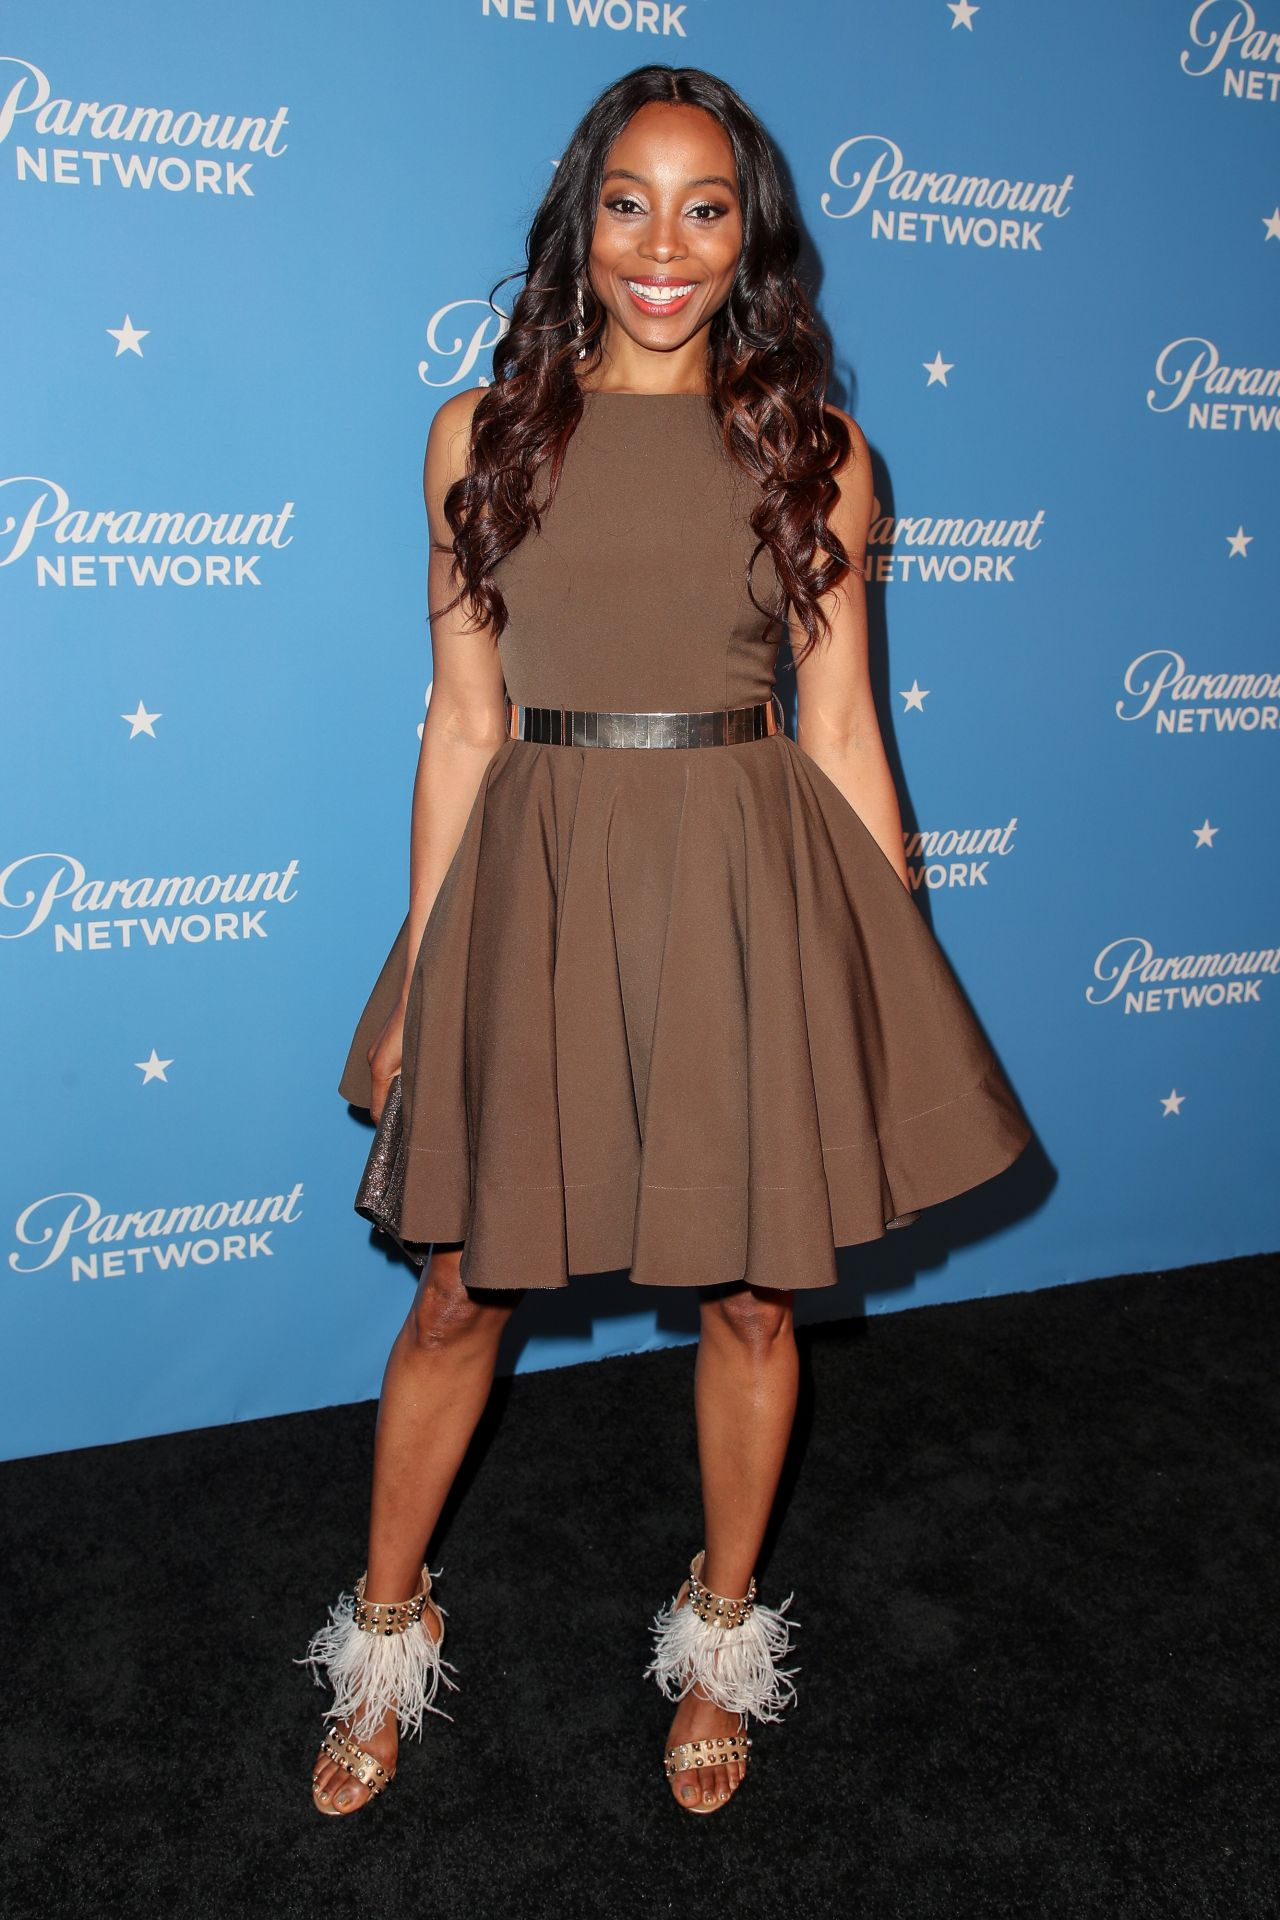 Erica Ash Paramount Network Launch Party In La